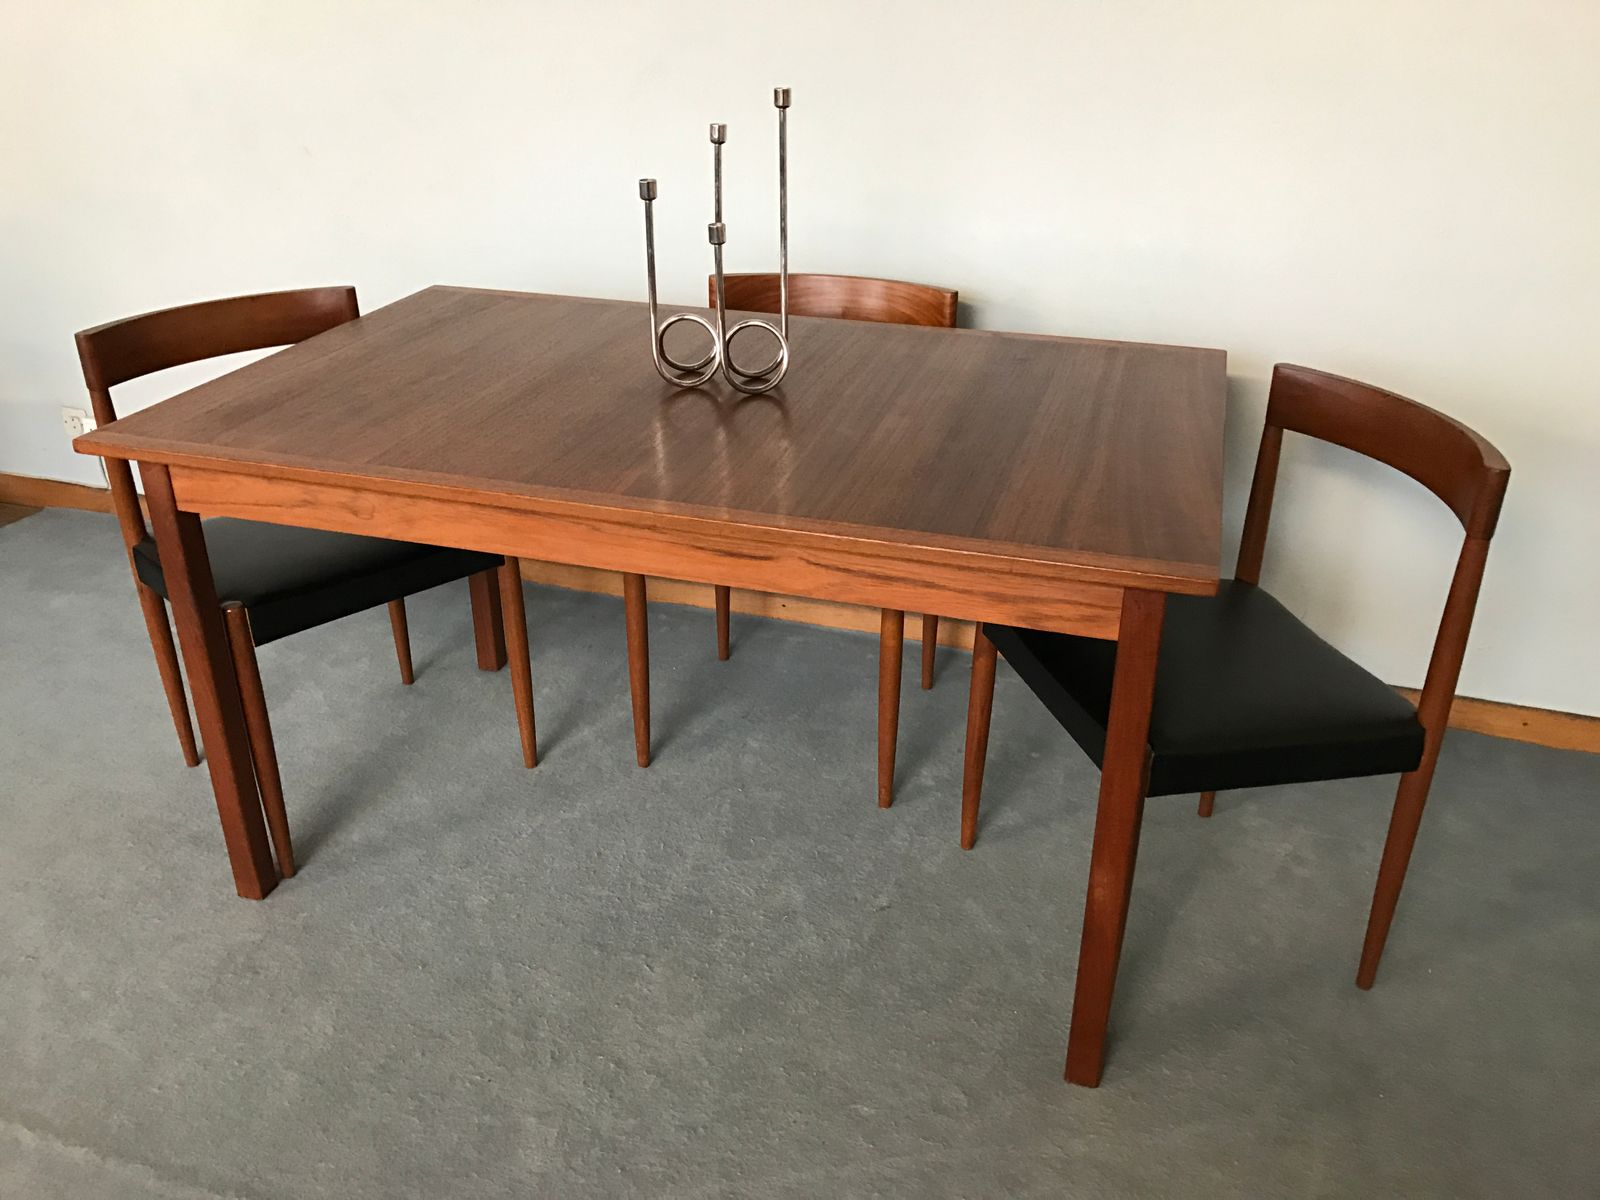 Vintage Scandinavian Teak Dining Table By Nils Jonsson